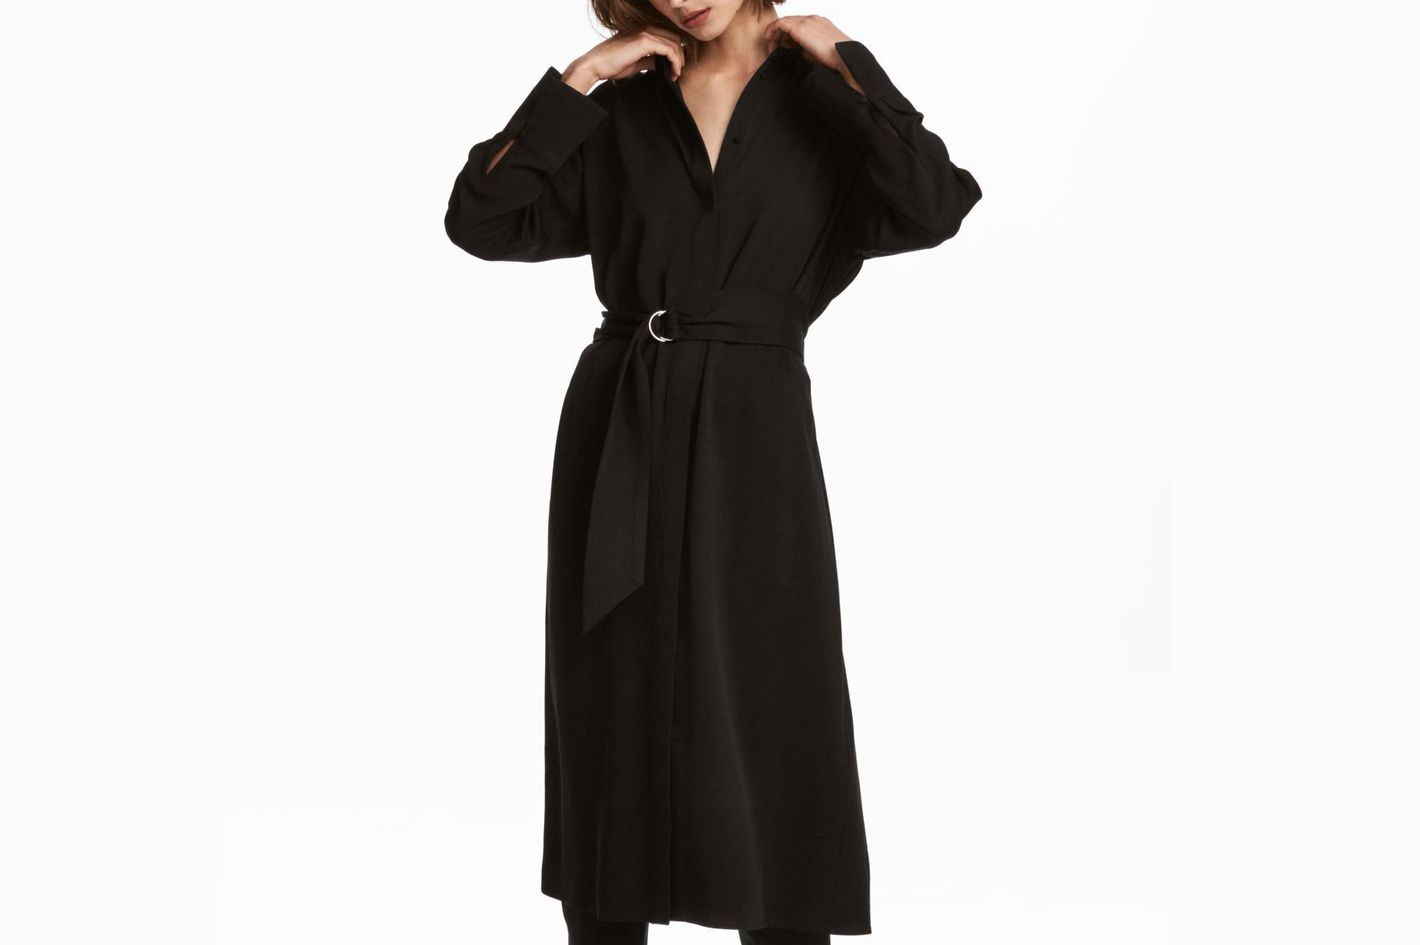 H&M V-Neck Belted Shirt Dress